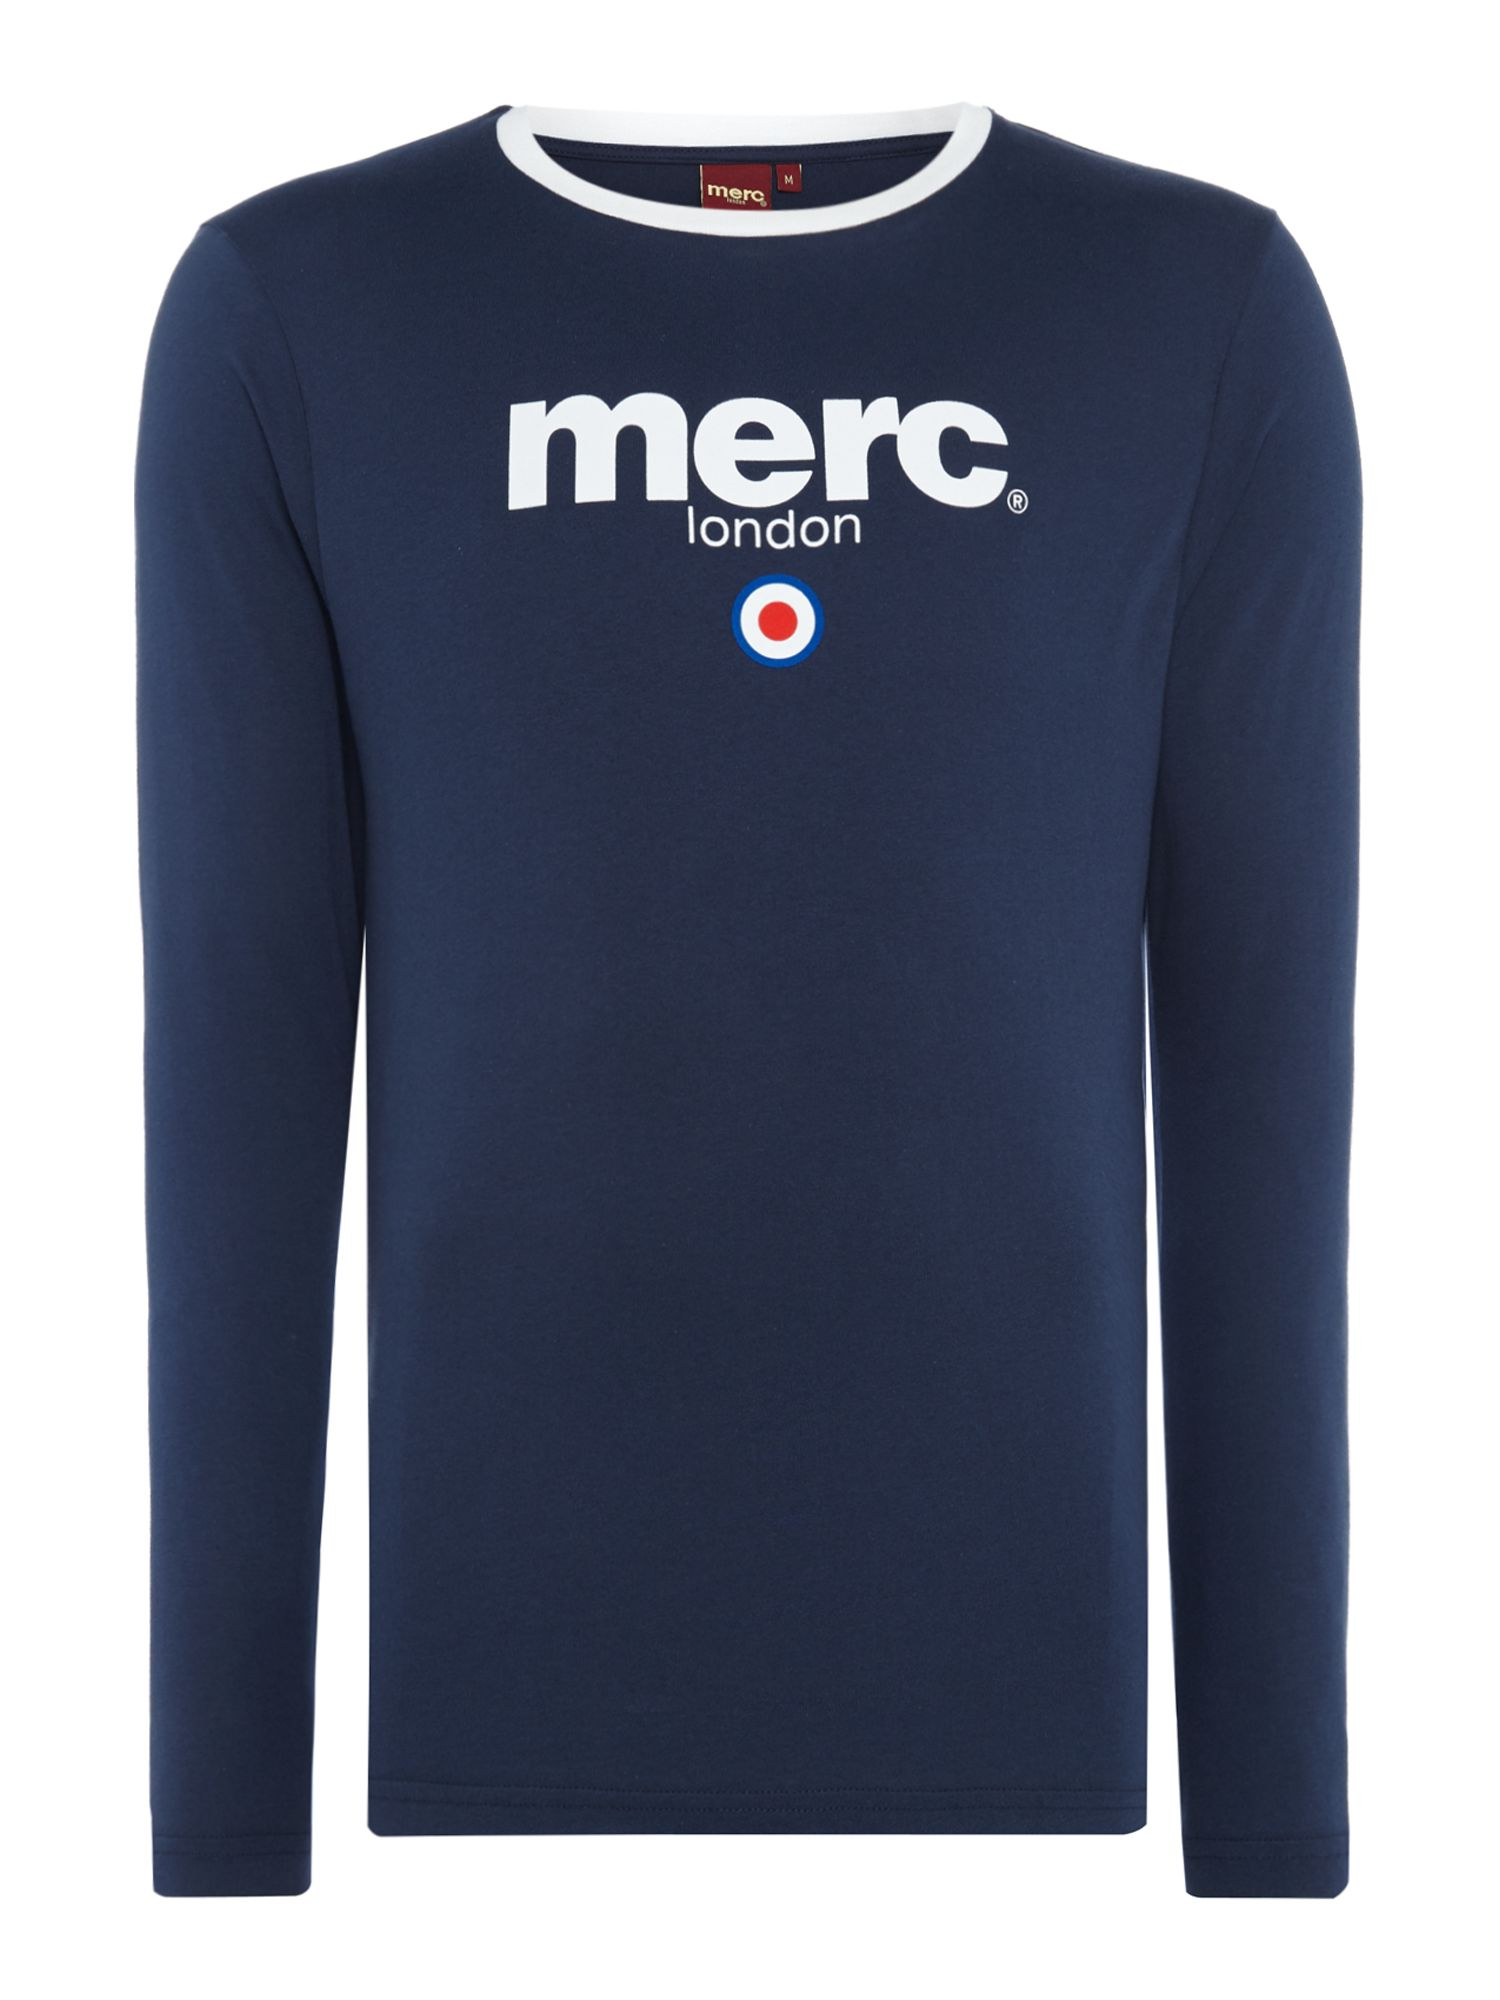 Men's Merc London Target Ringer Tee, Blue